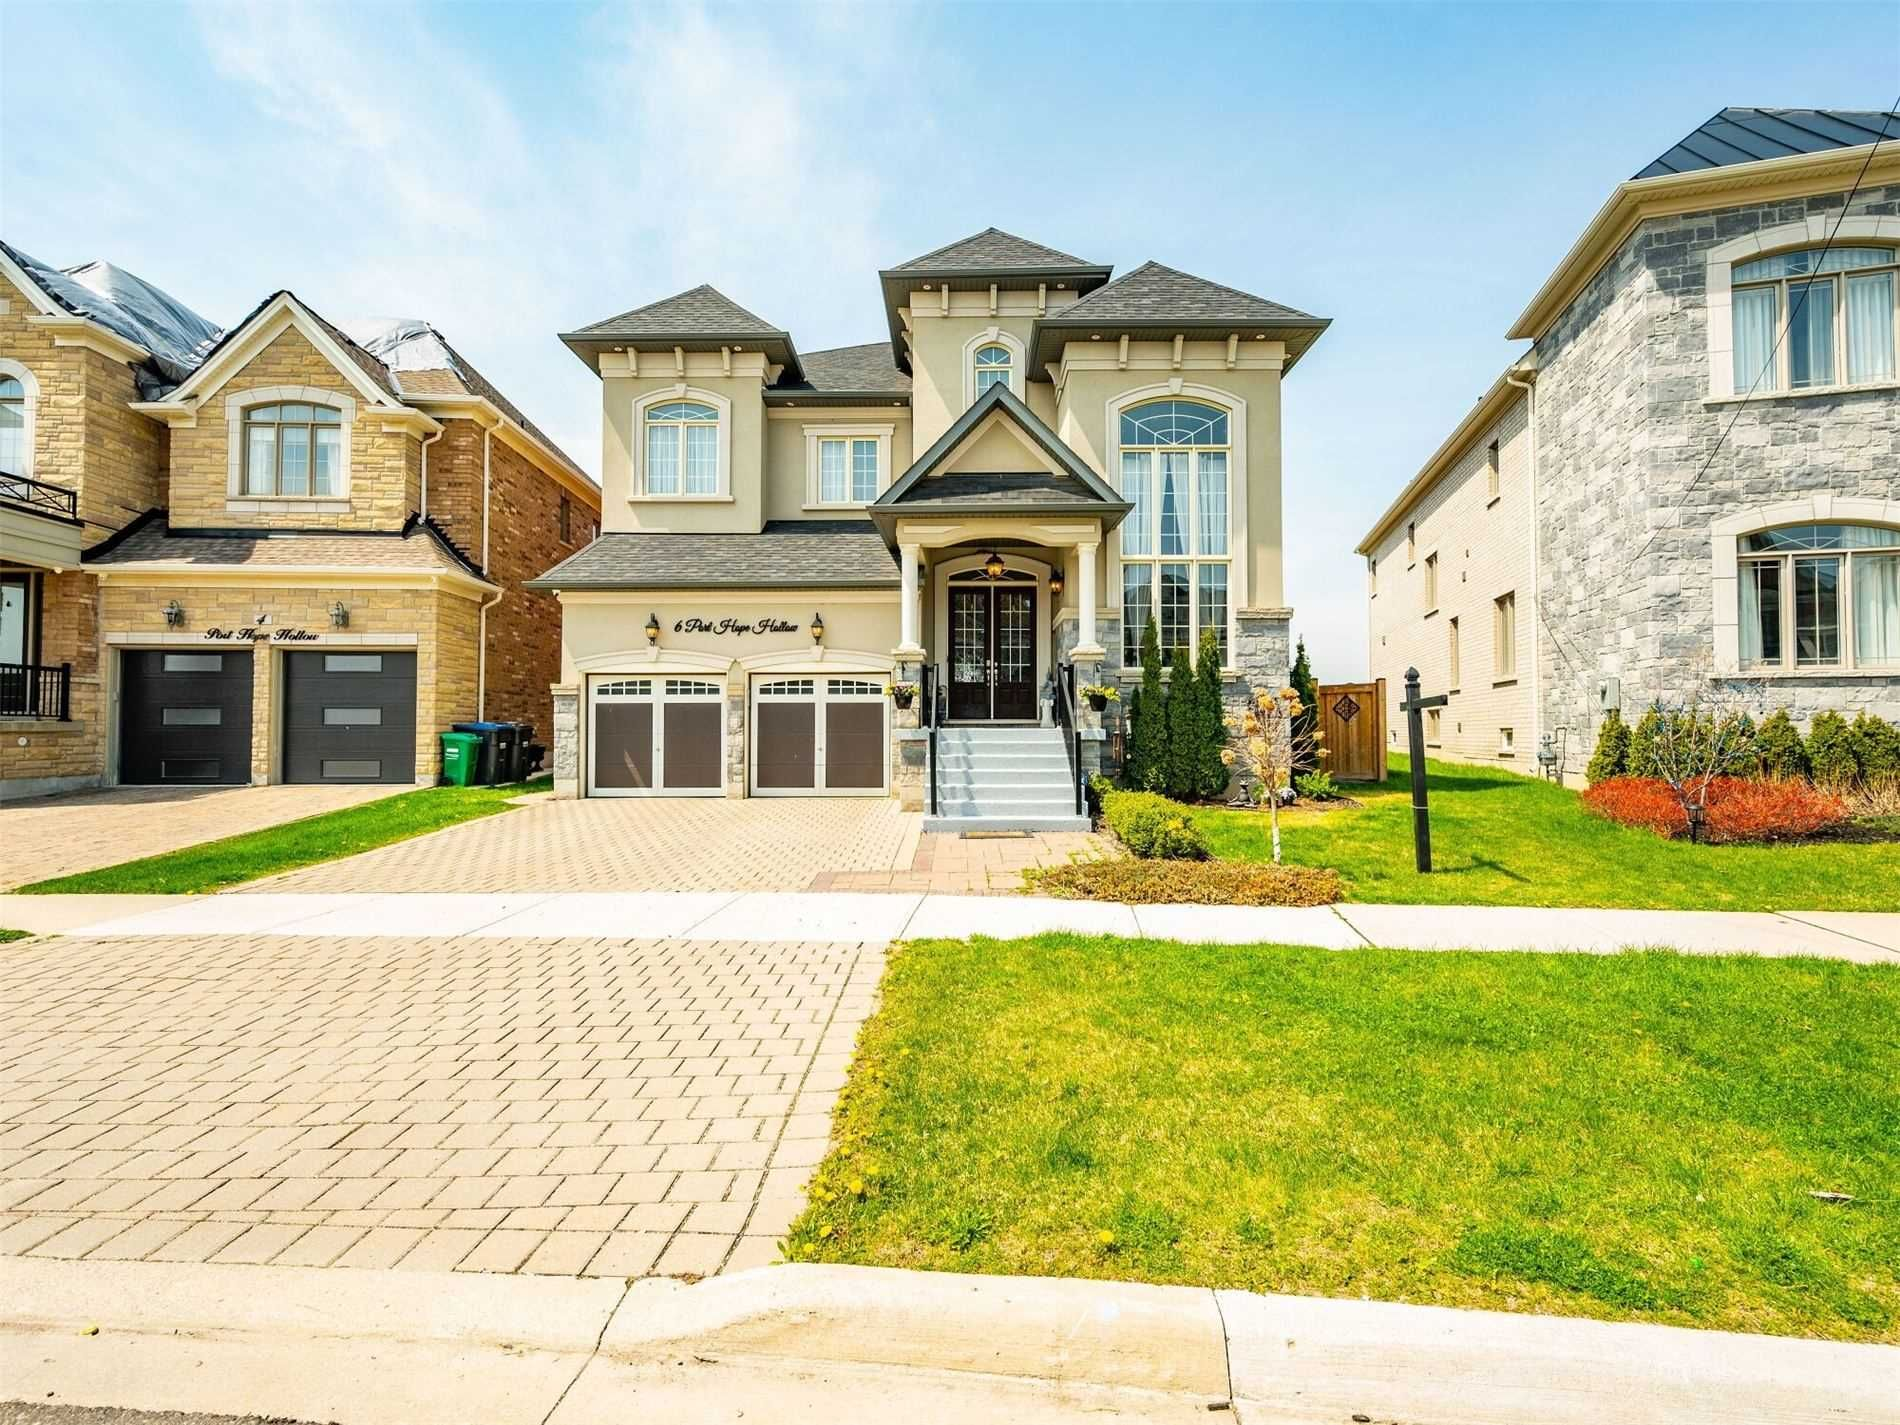 Main Photo: 6 Port Hope Hllw in Brampton: Bram West Freehold for sale : MLS®# W5212532